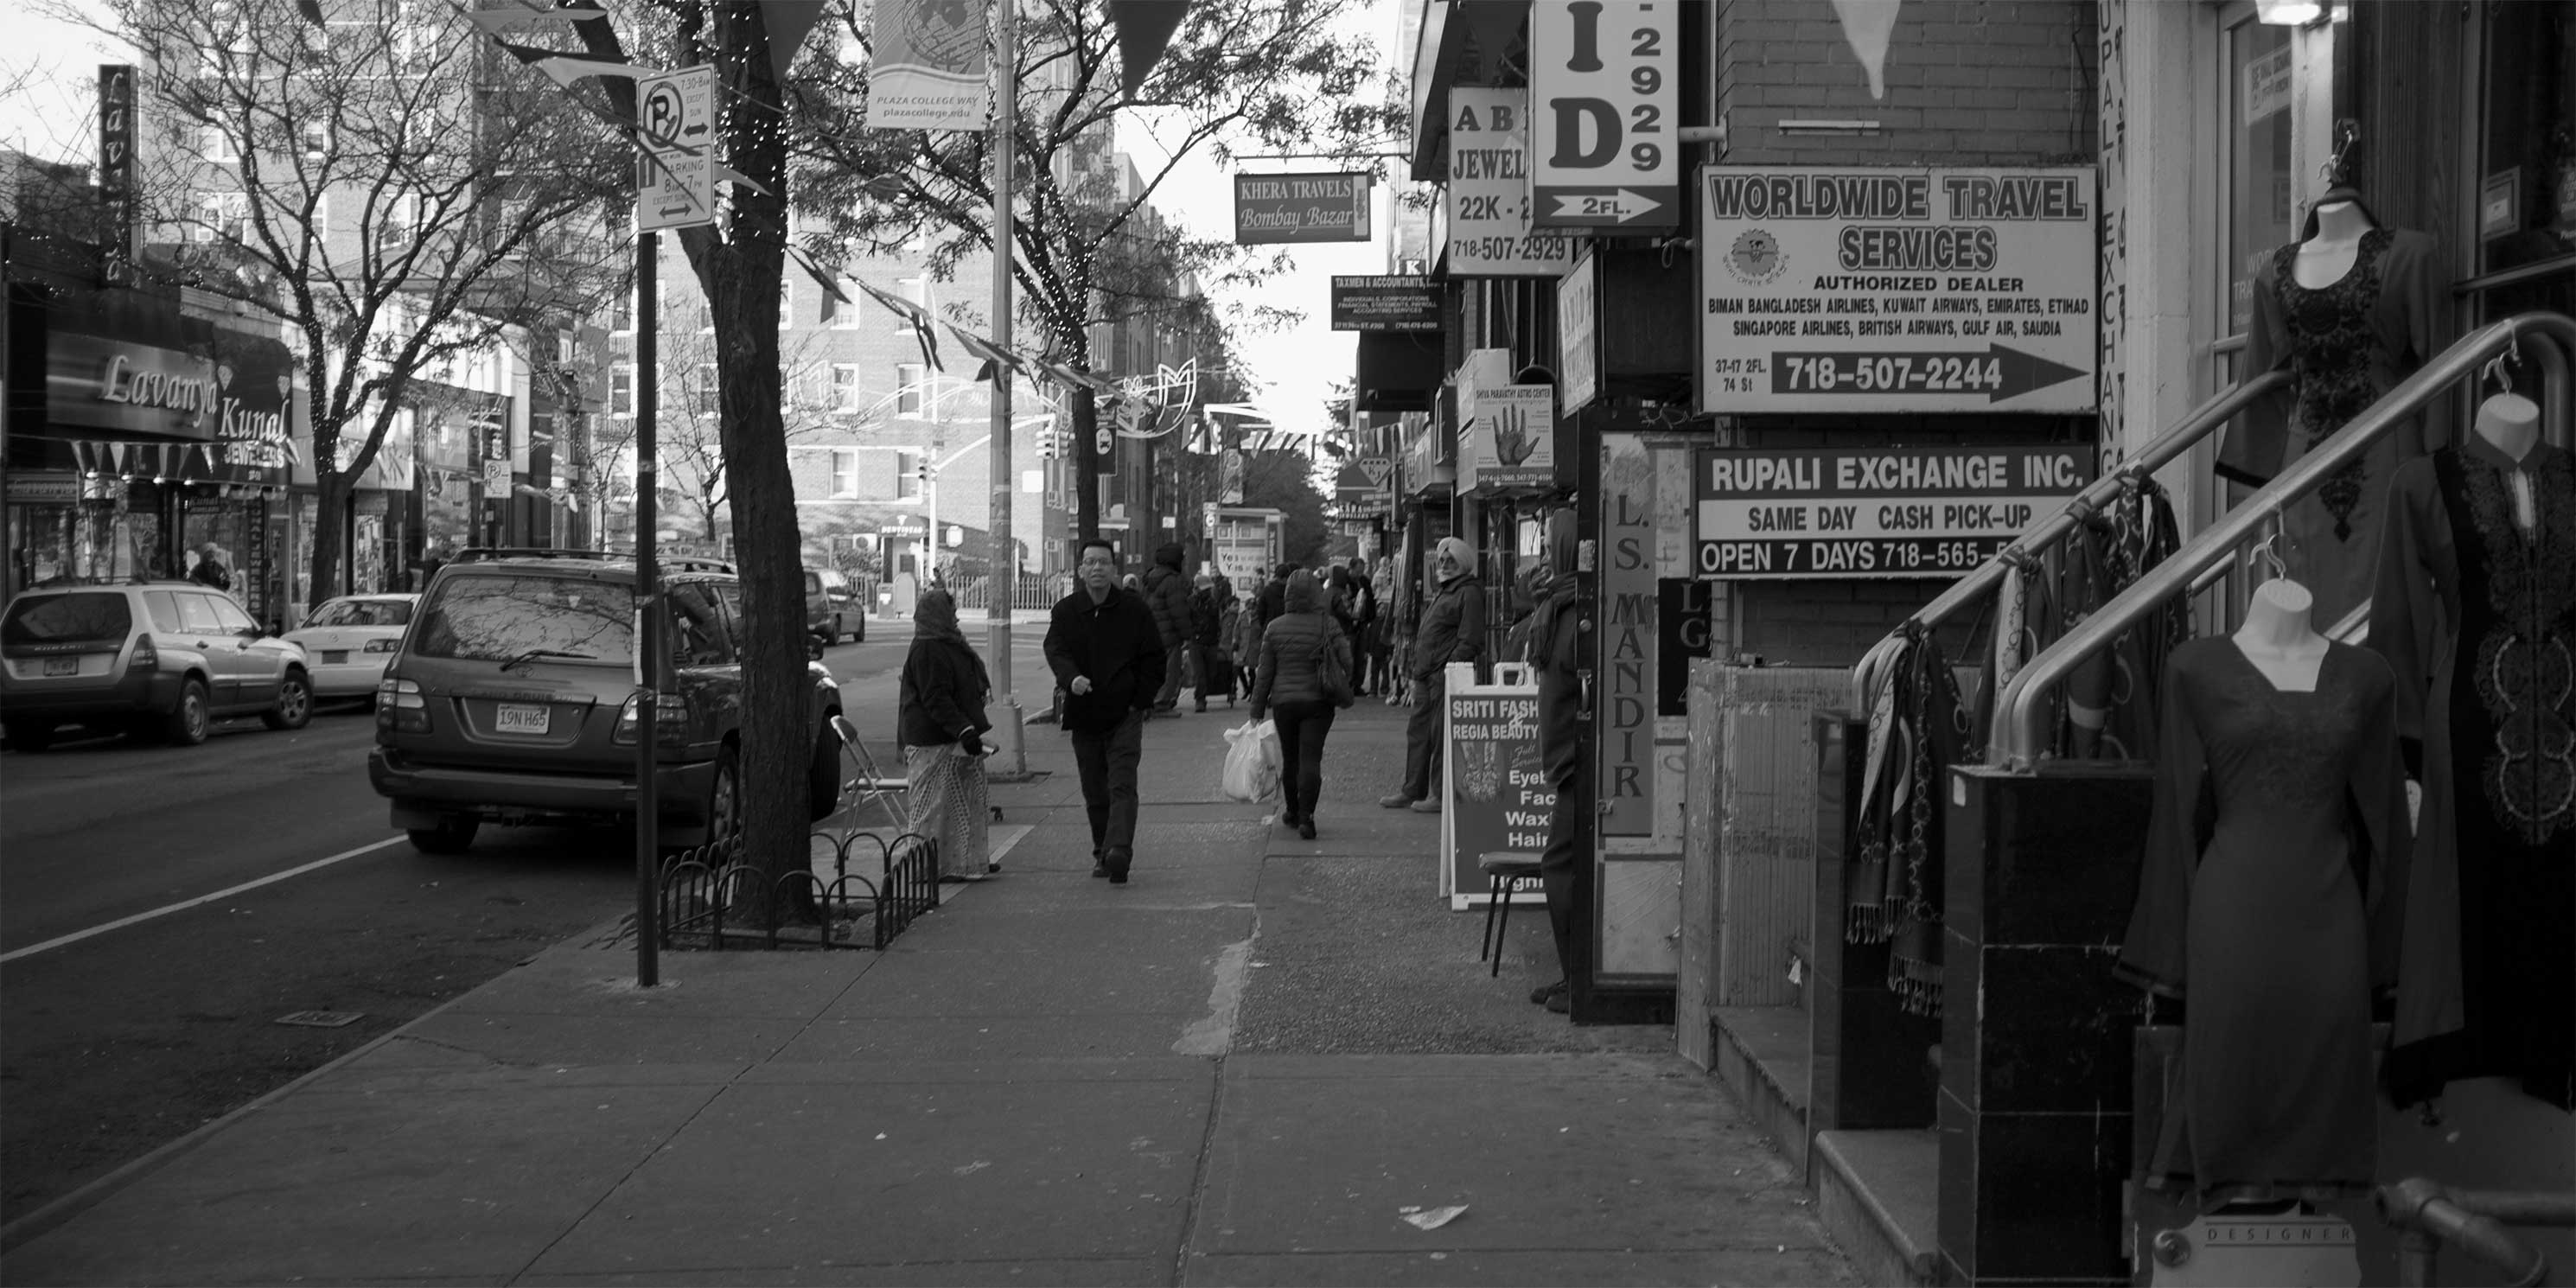 A street in the Jackson Heights neighborhood of Queens. Photo: Creative Commons, Aleksandr Zykov. Modifications: Image cropped and transformed to black and white.